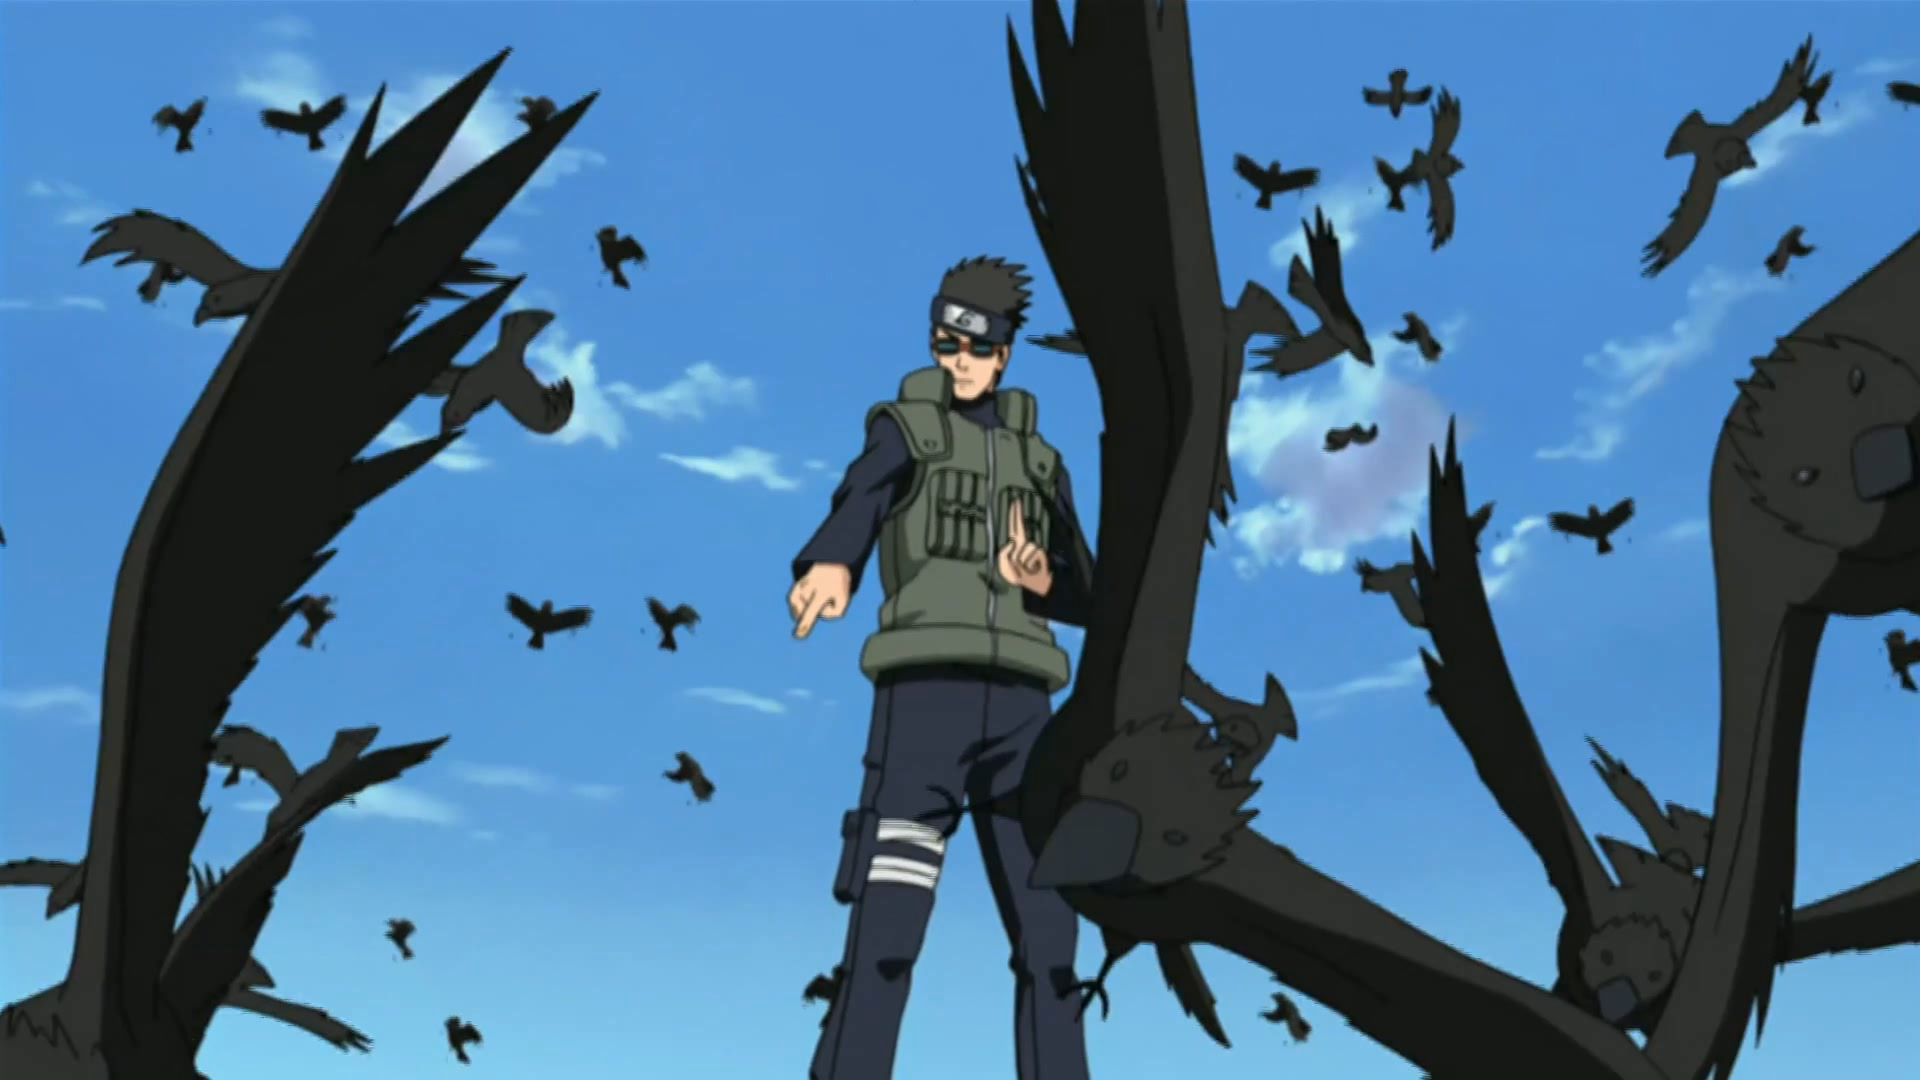 Scattering Thousand Crows Technique | Narutopedia | FANDOM ...